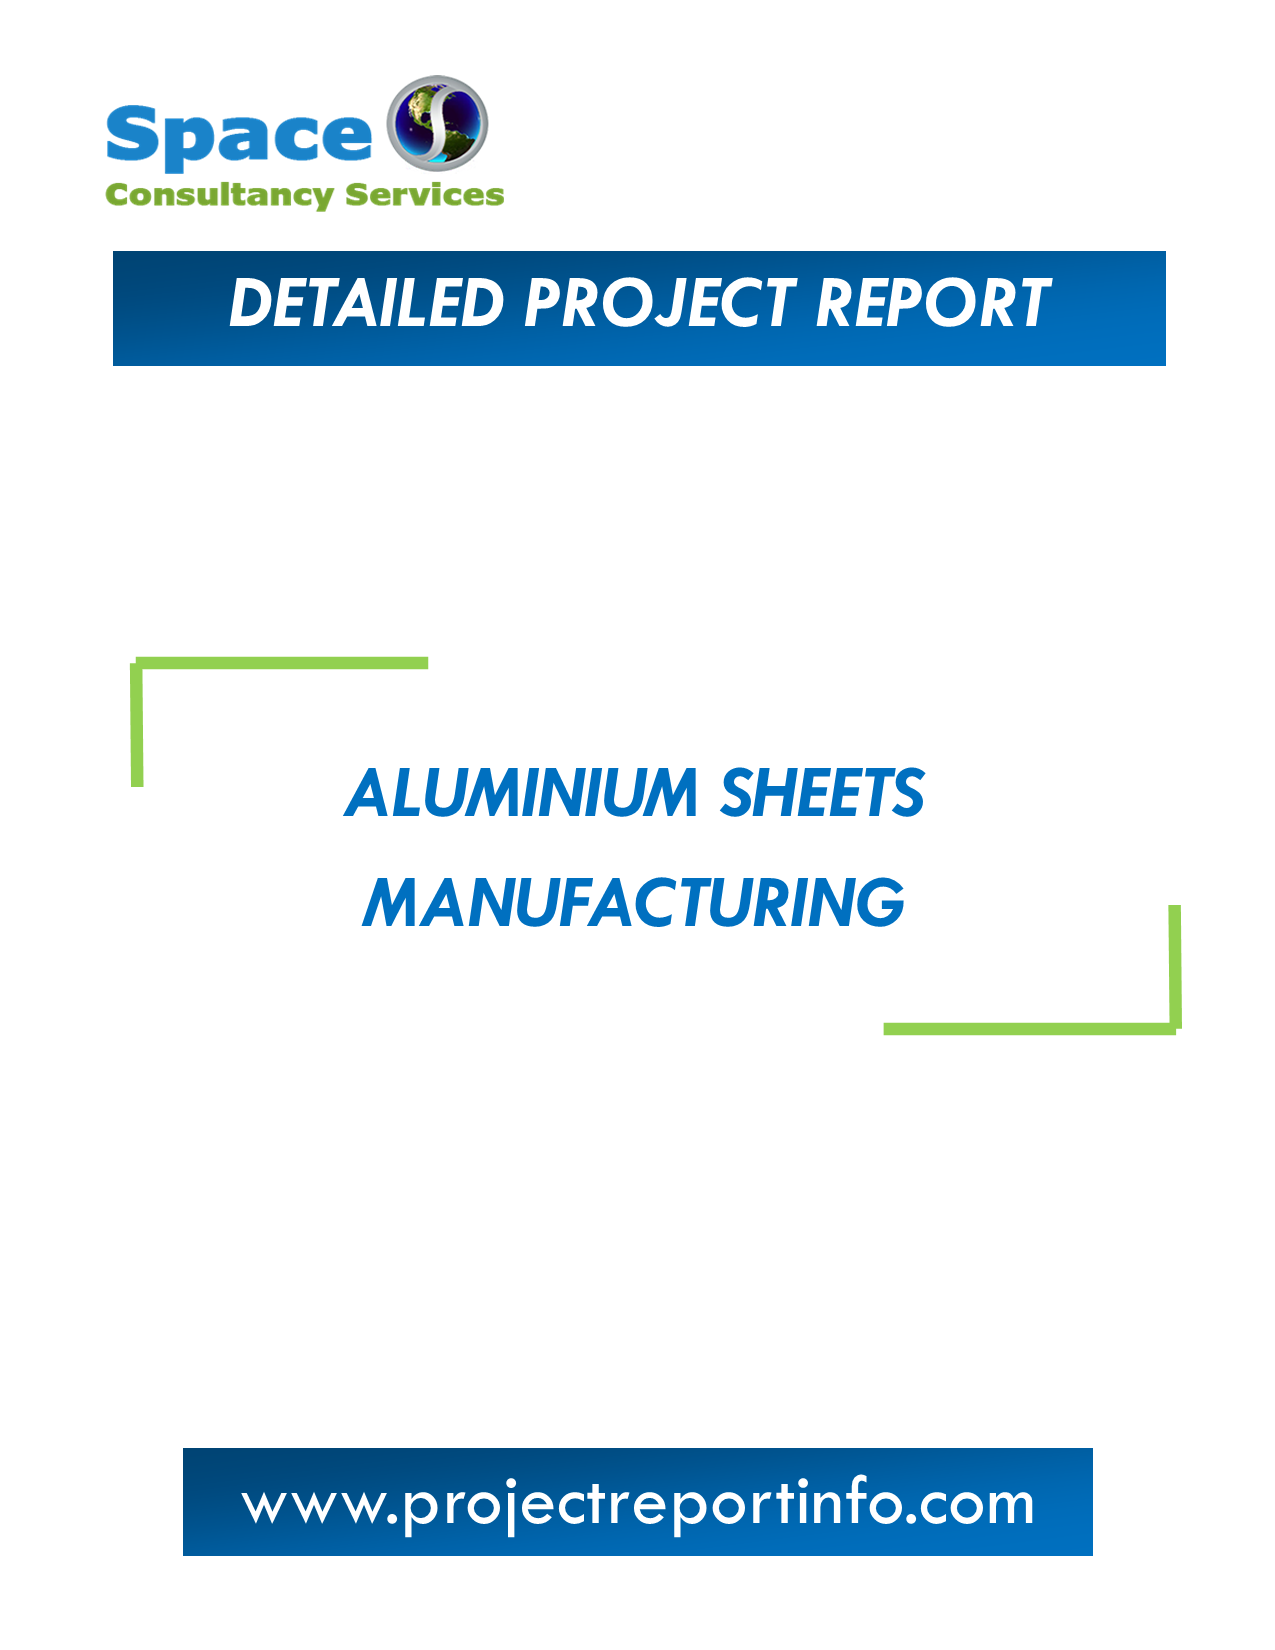 Project Report on Aluminium Sheets Manufacturing